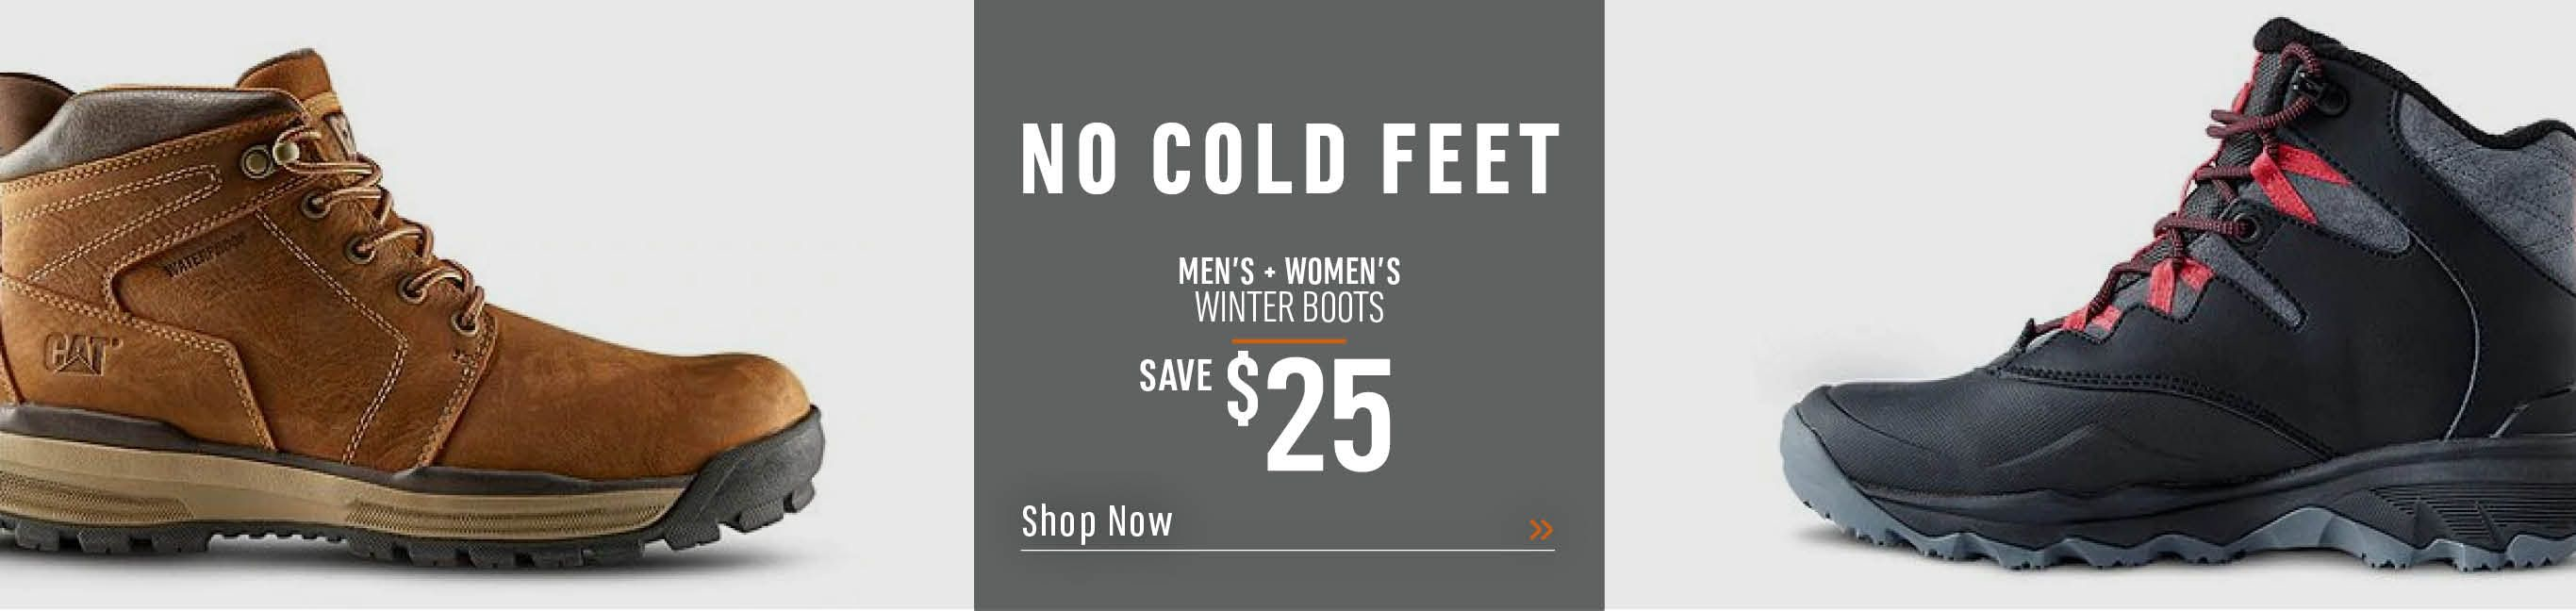 No Cold Feet. Men's and Women's Winter Boots. Save $25. Shop Now.